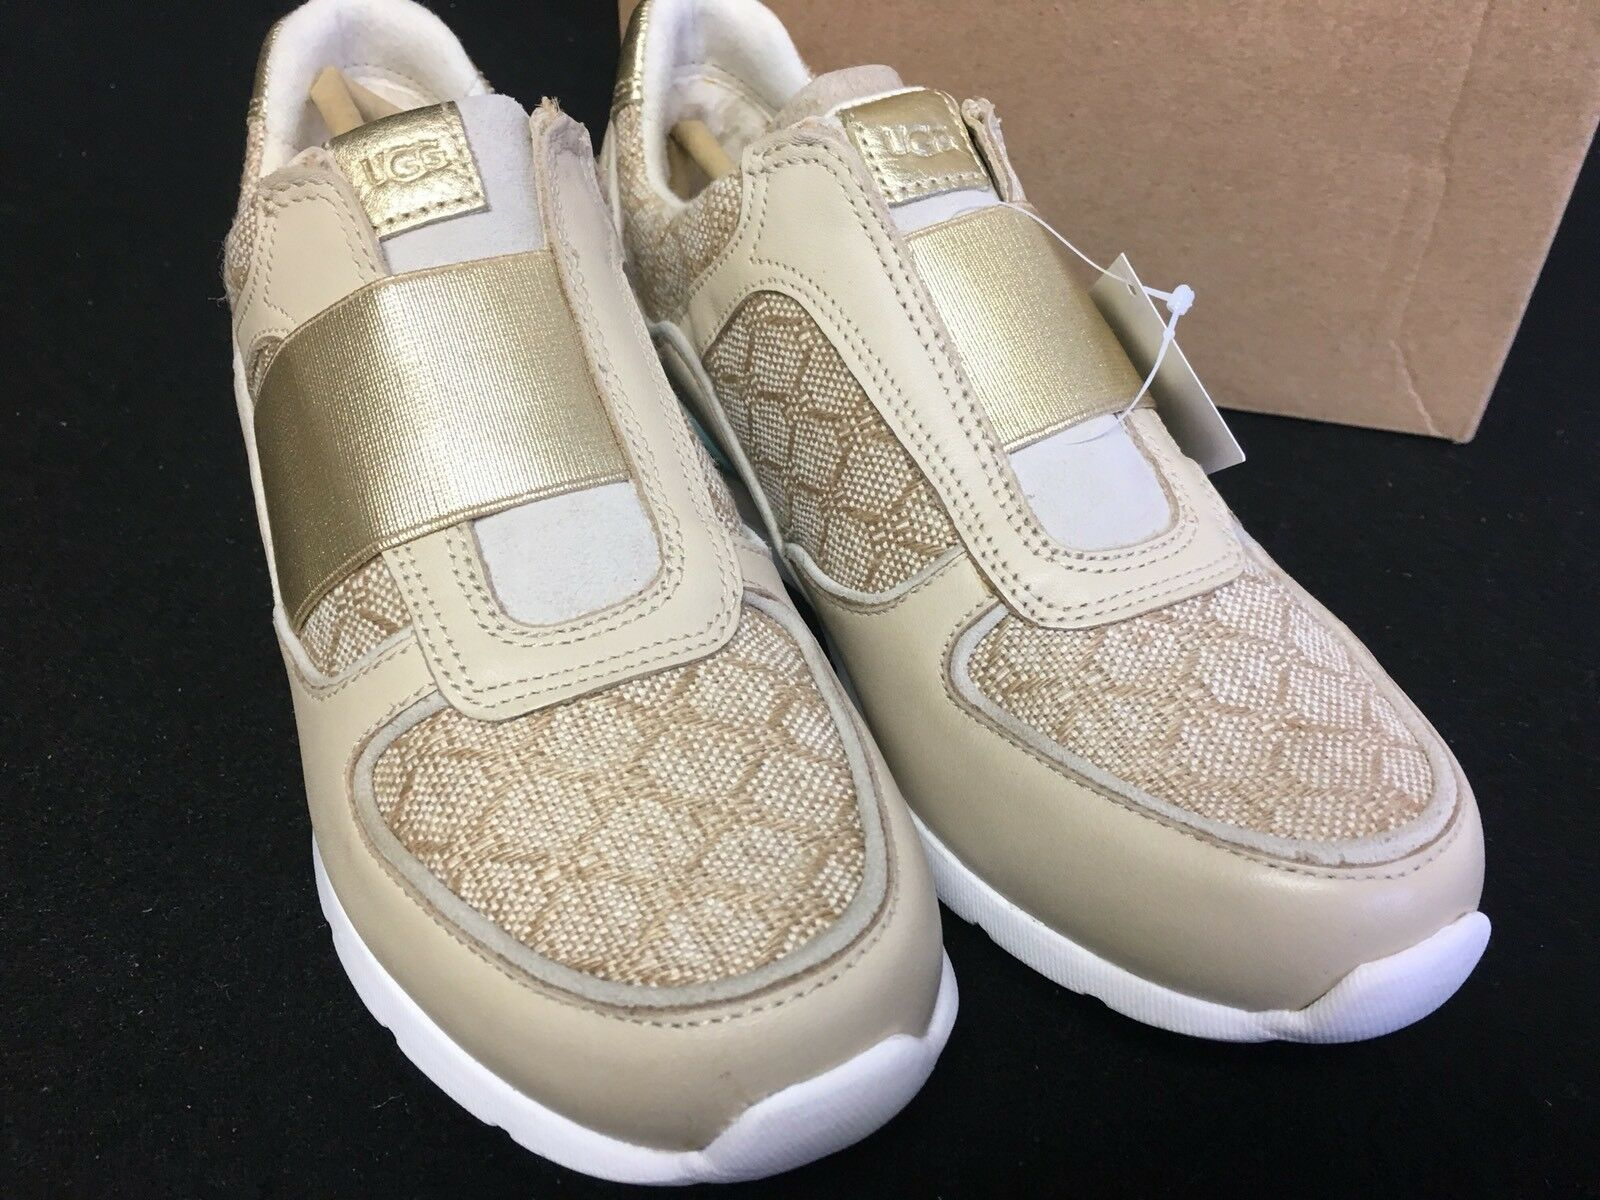 UGG Annetta Slip-On Sneaker Women Trainers Athletic Fashion Shoes 1012180 Buff